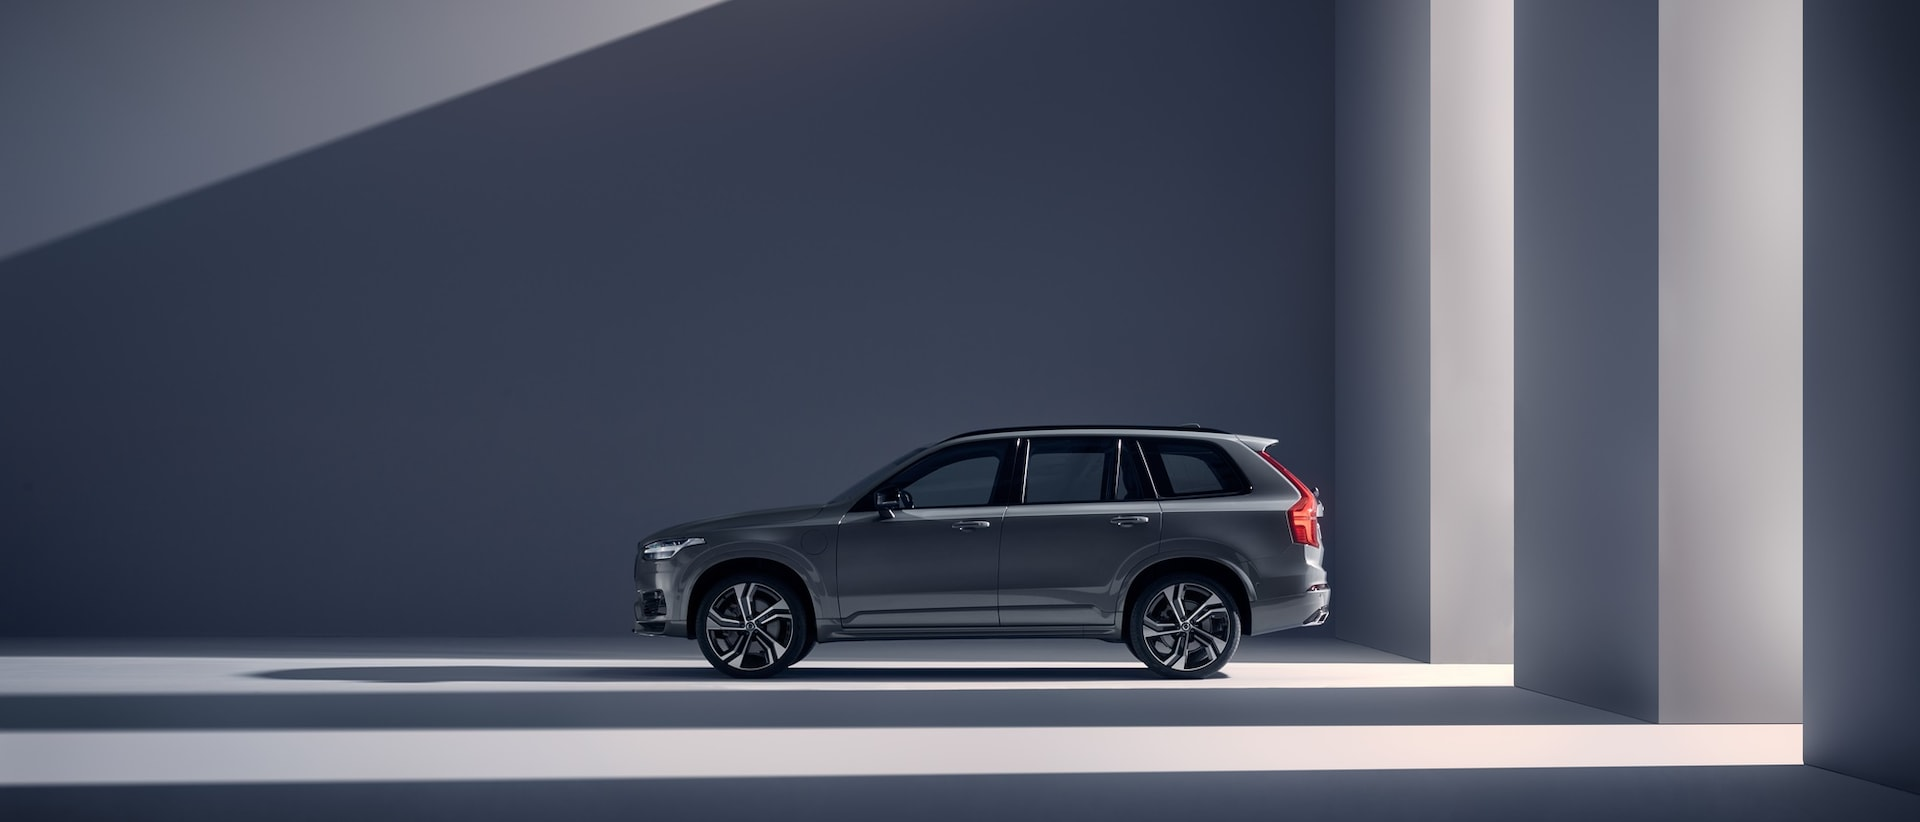 A Volvo XC90 Recharge in a grey surrounding